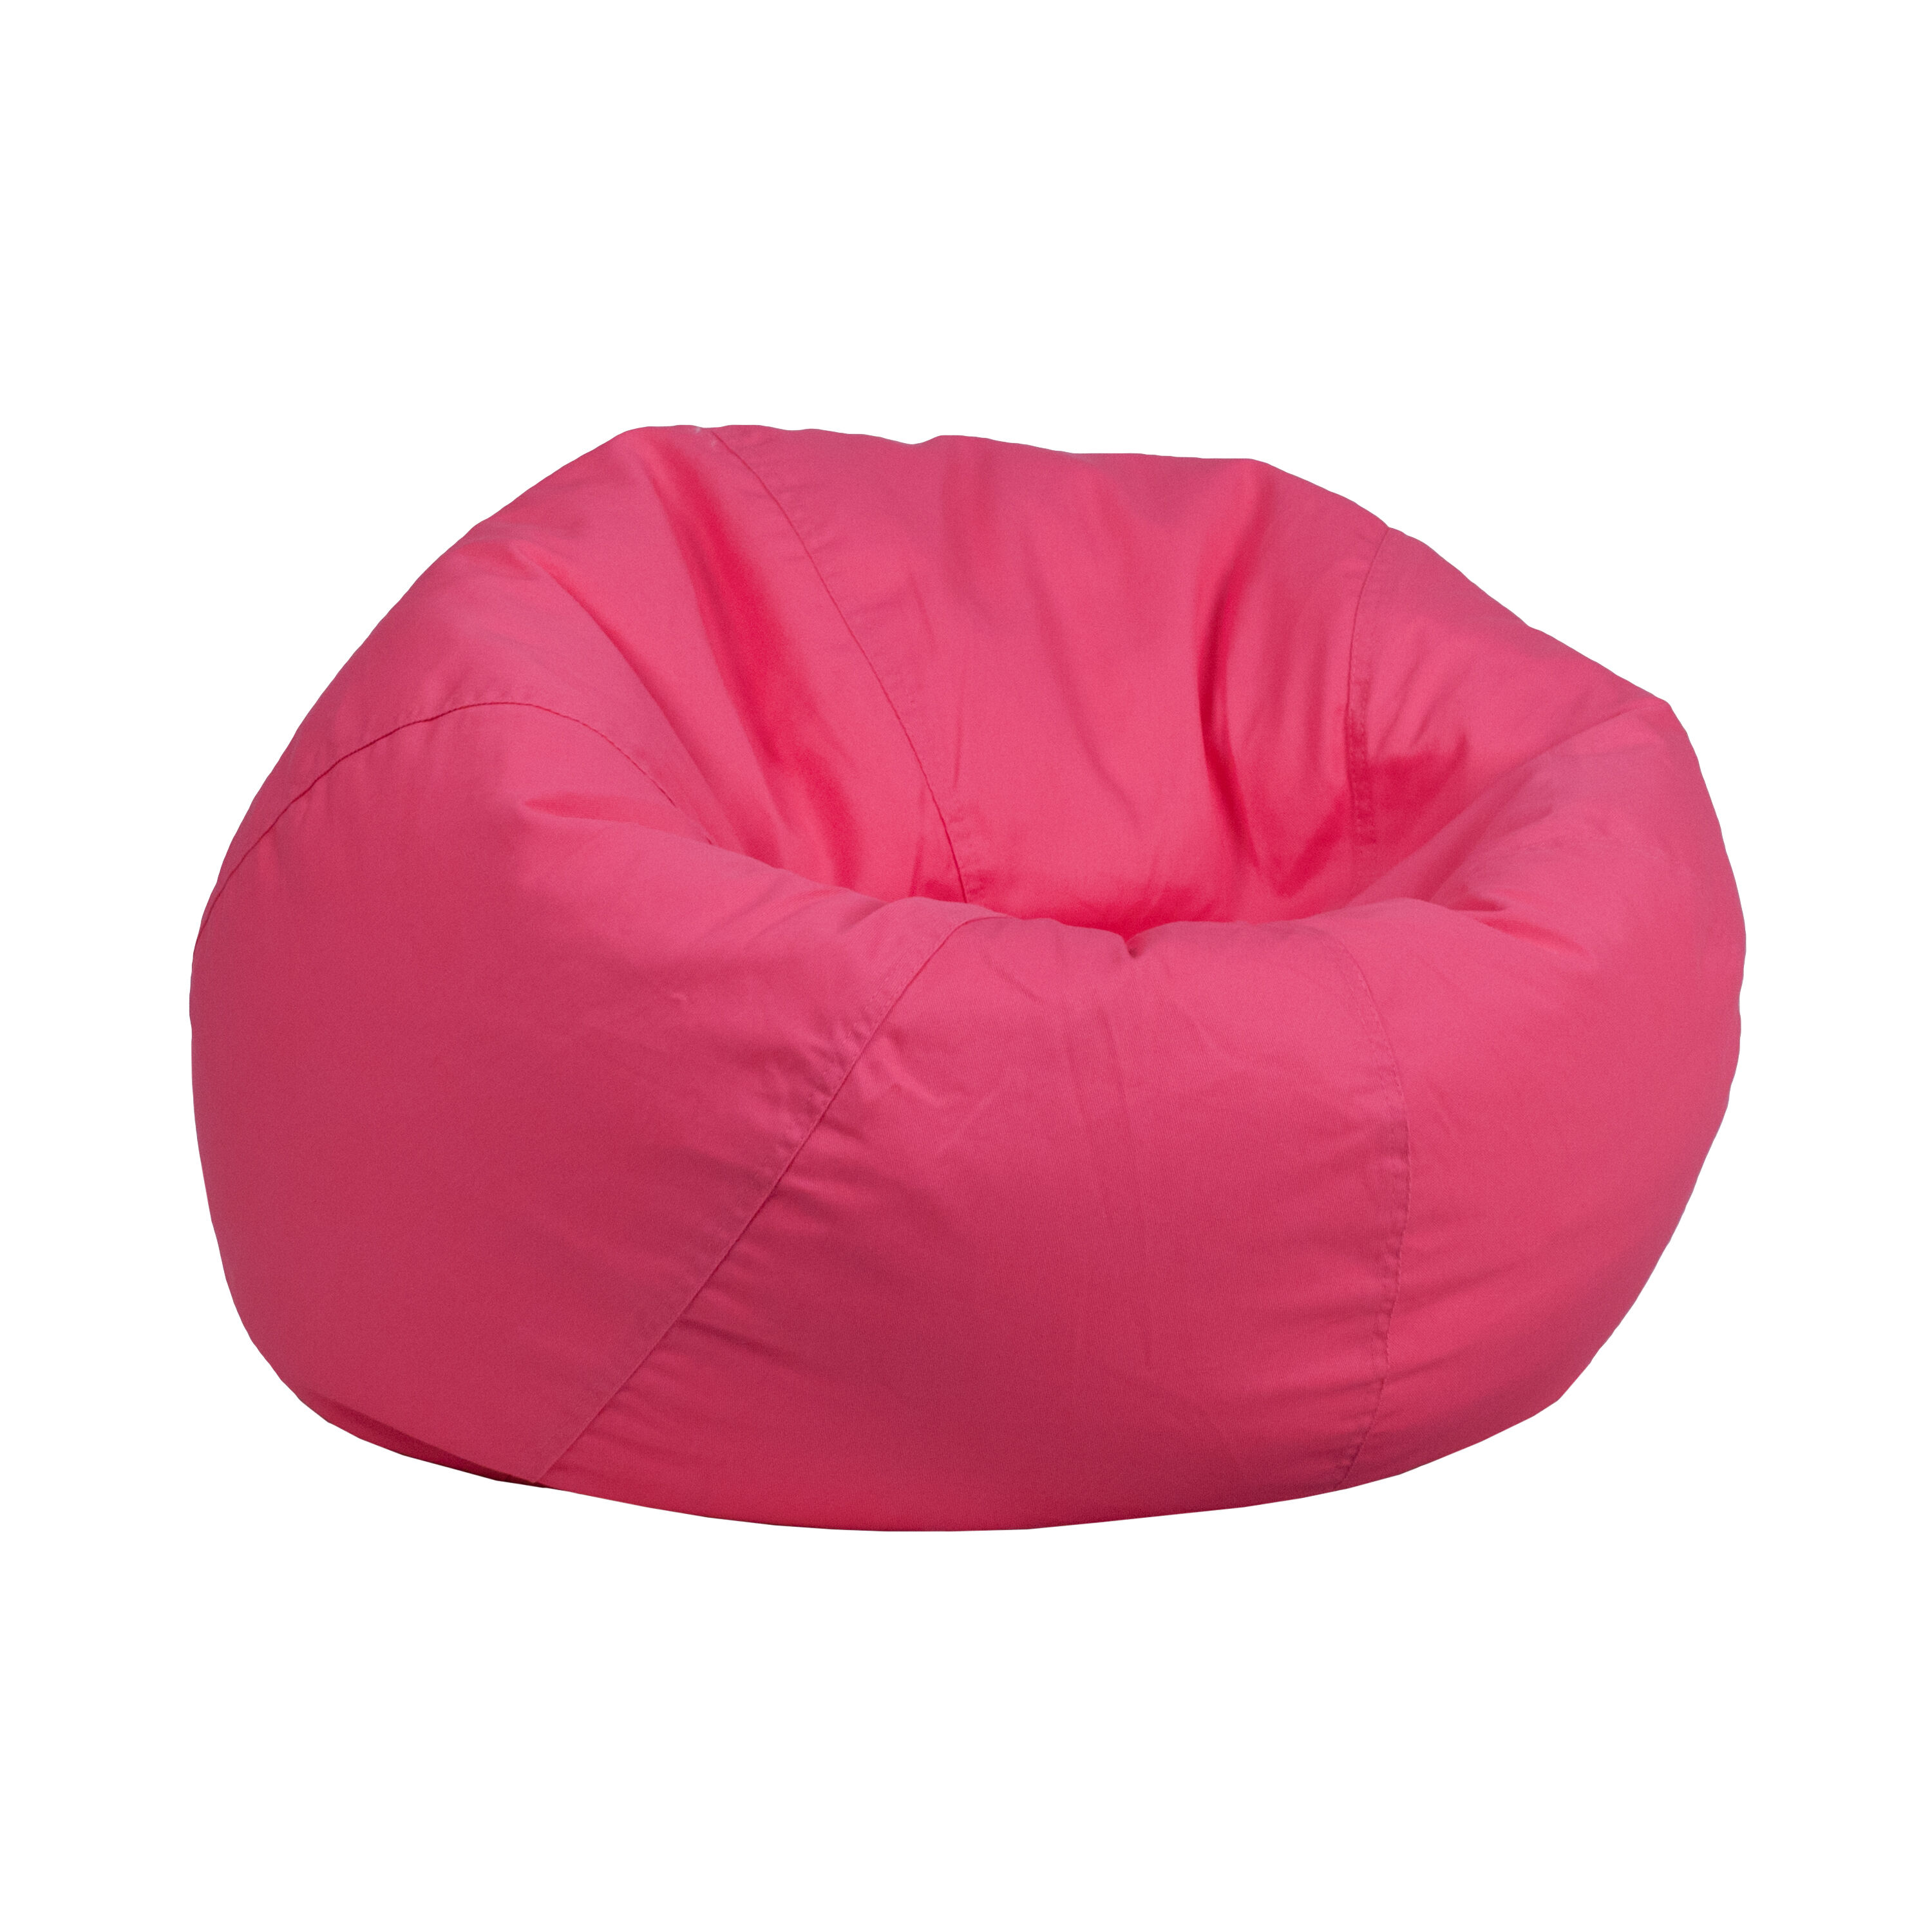 Hot Pink Office Chair Our Small Solid Hot Pink Kids Bean Bag Chair Is On Sale Now